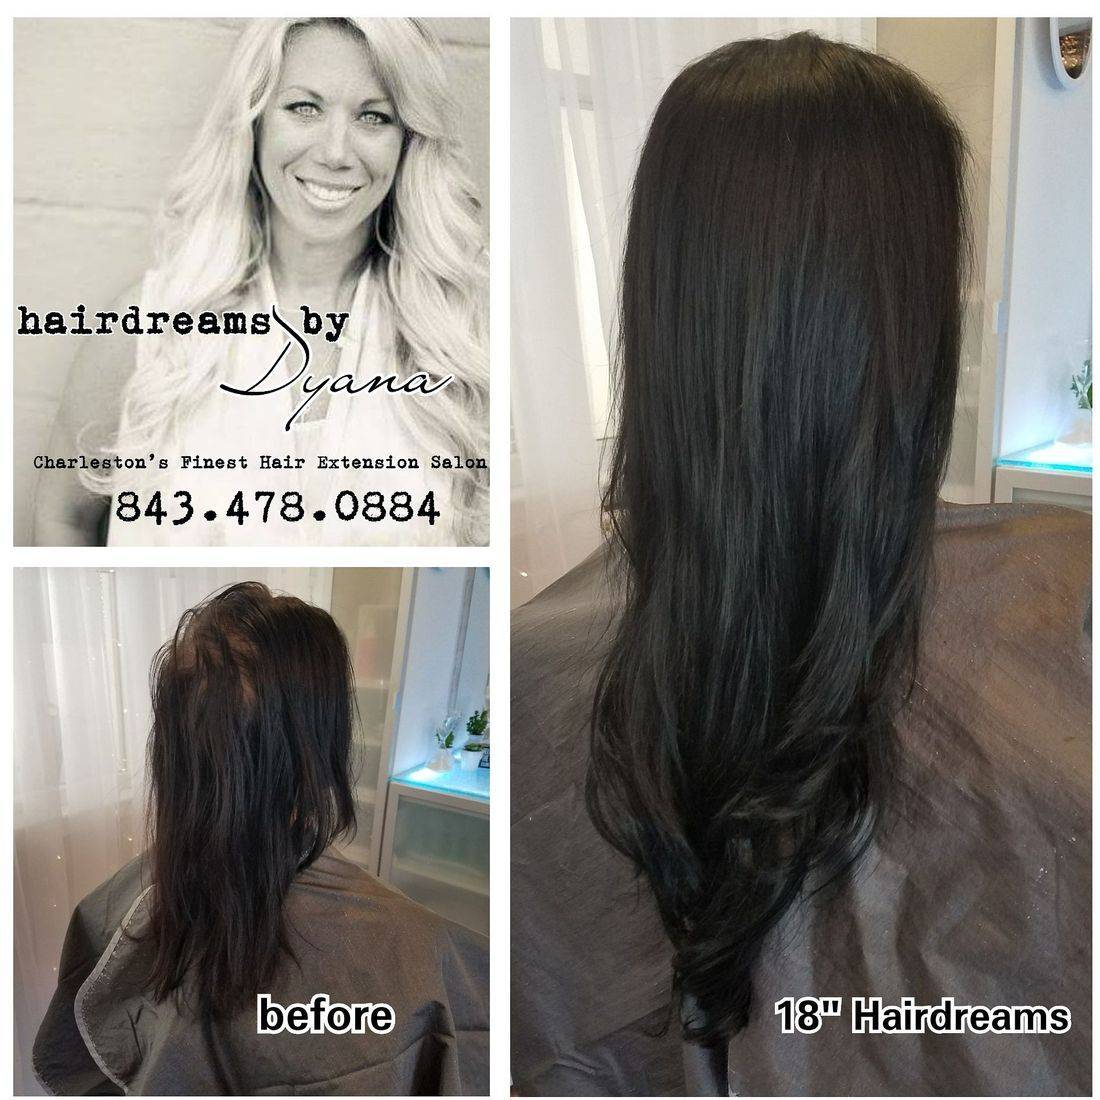 Hairdreams by Dyana